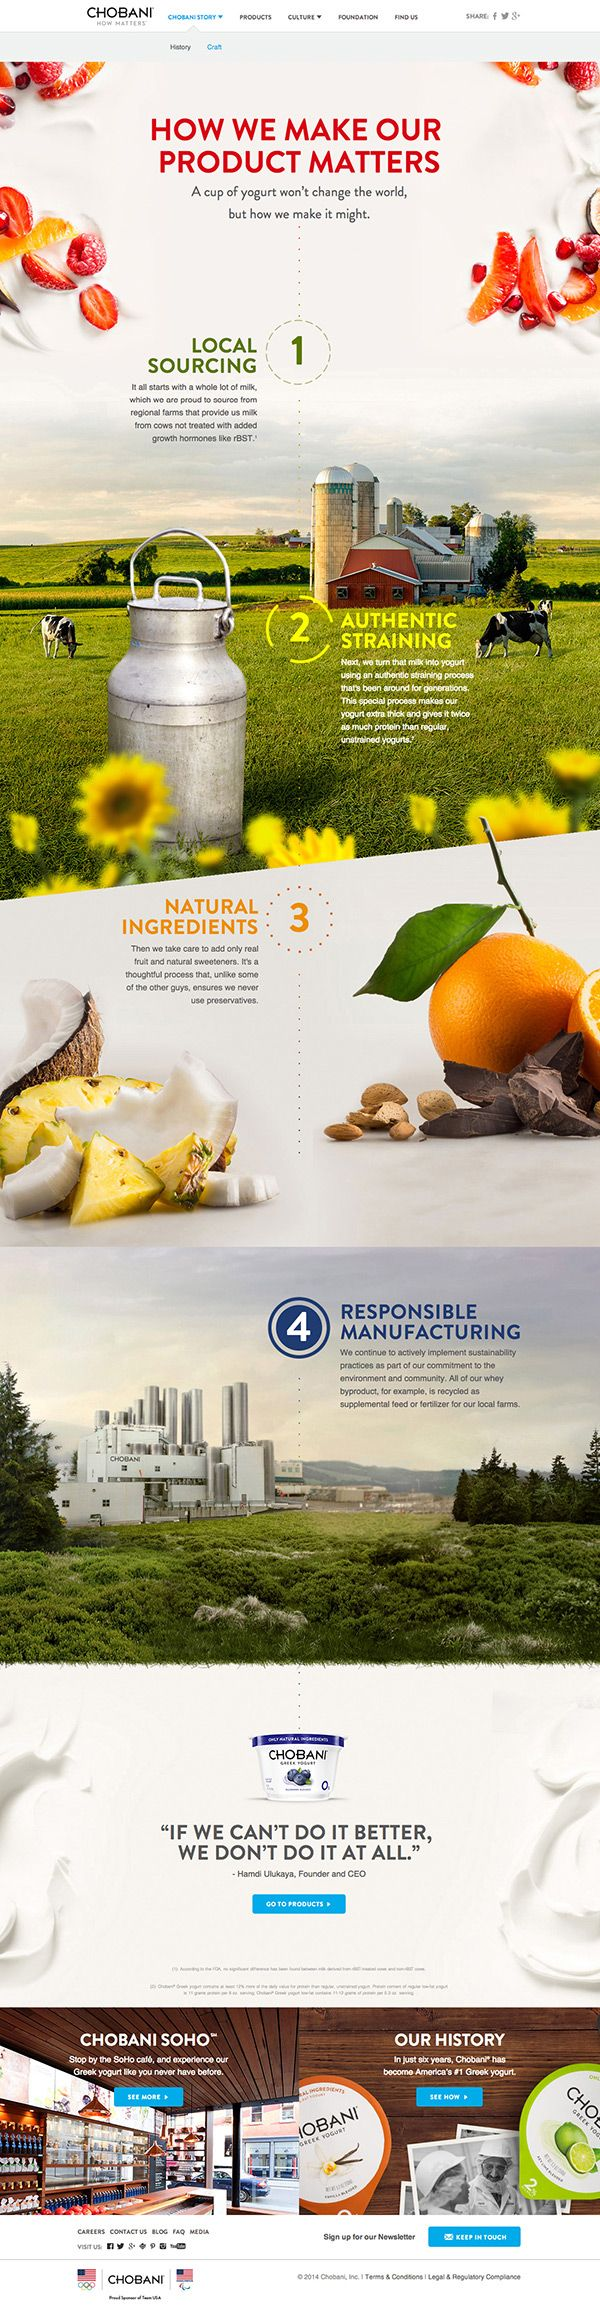 Unique Web Design, Chobani #WebDesign #Design…